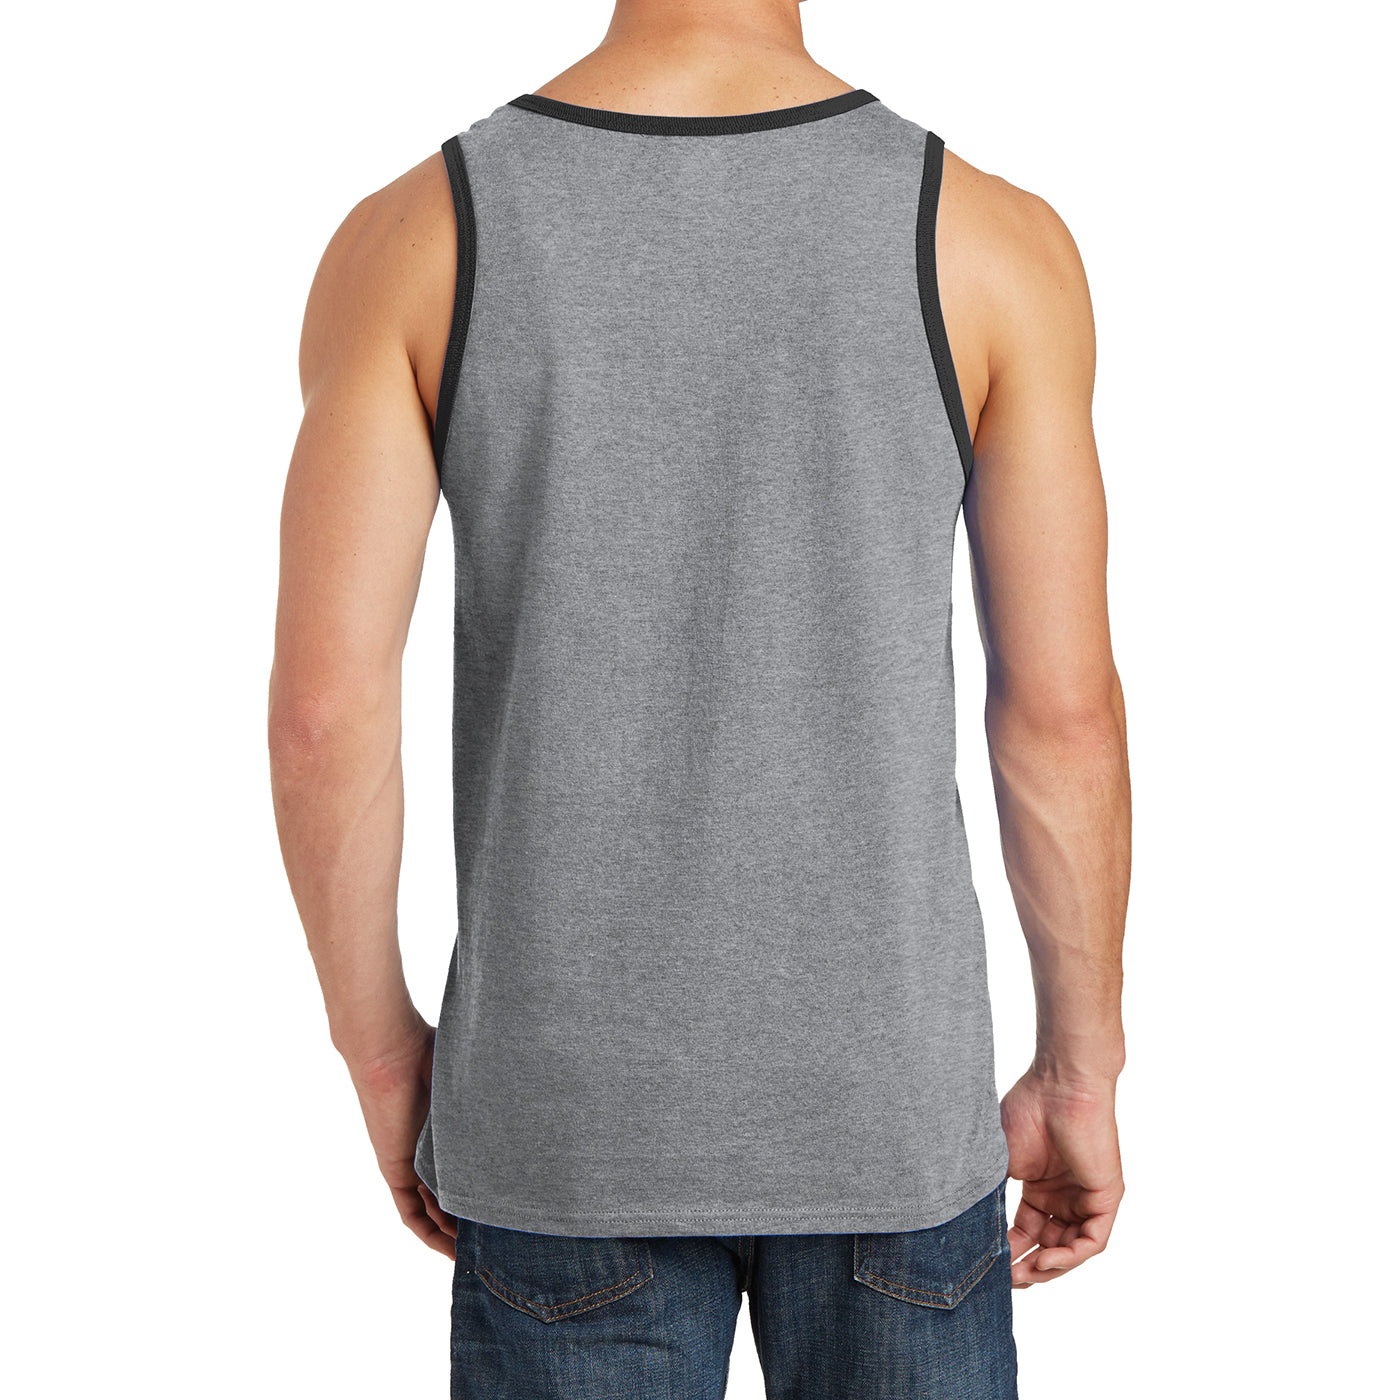 Men's Core Cotton Tank Top - Athletic Heather/ Jet Black - Back